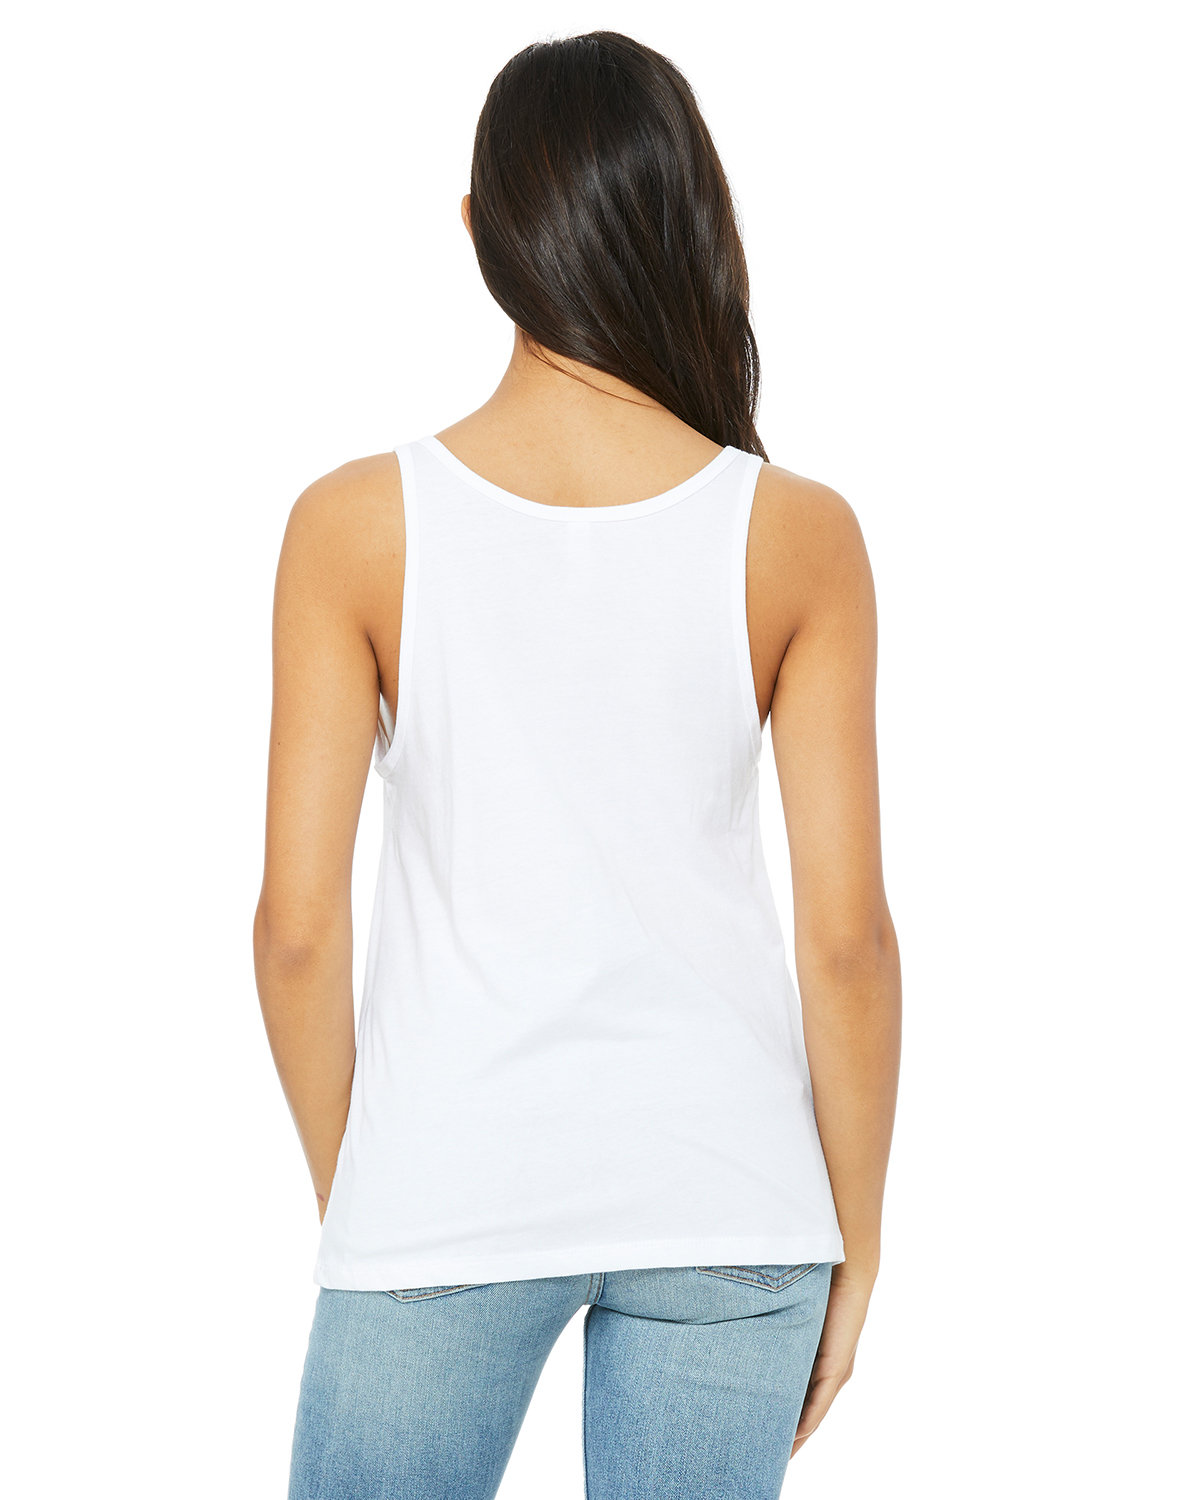 94f5116e76935f Front Back Side. Gallery View Download HiRes Design Studio. 6488 Bella +  Canvas Ladies  Relaxed Jersey Tank